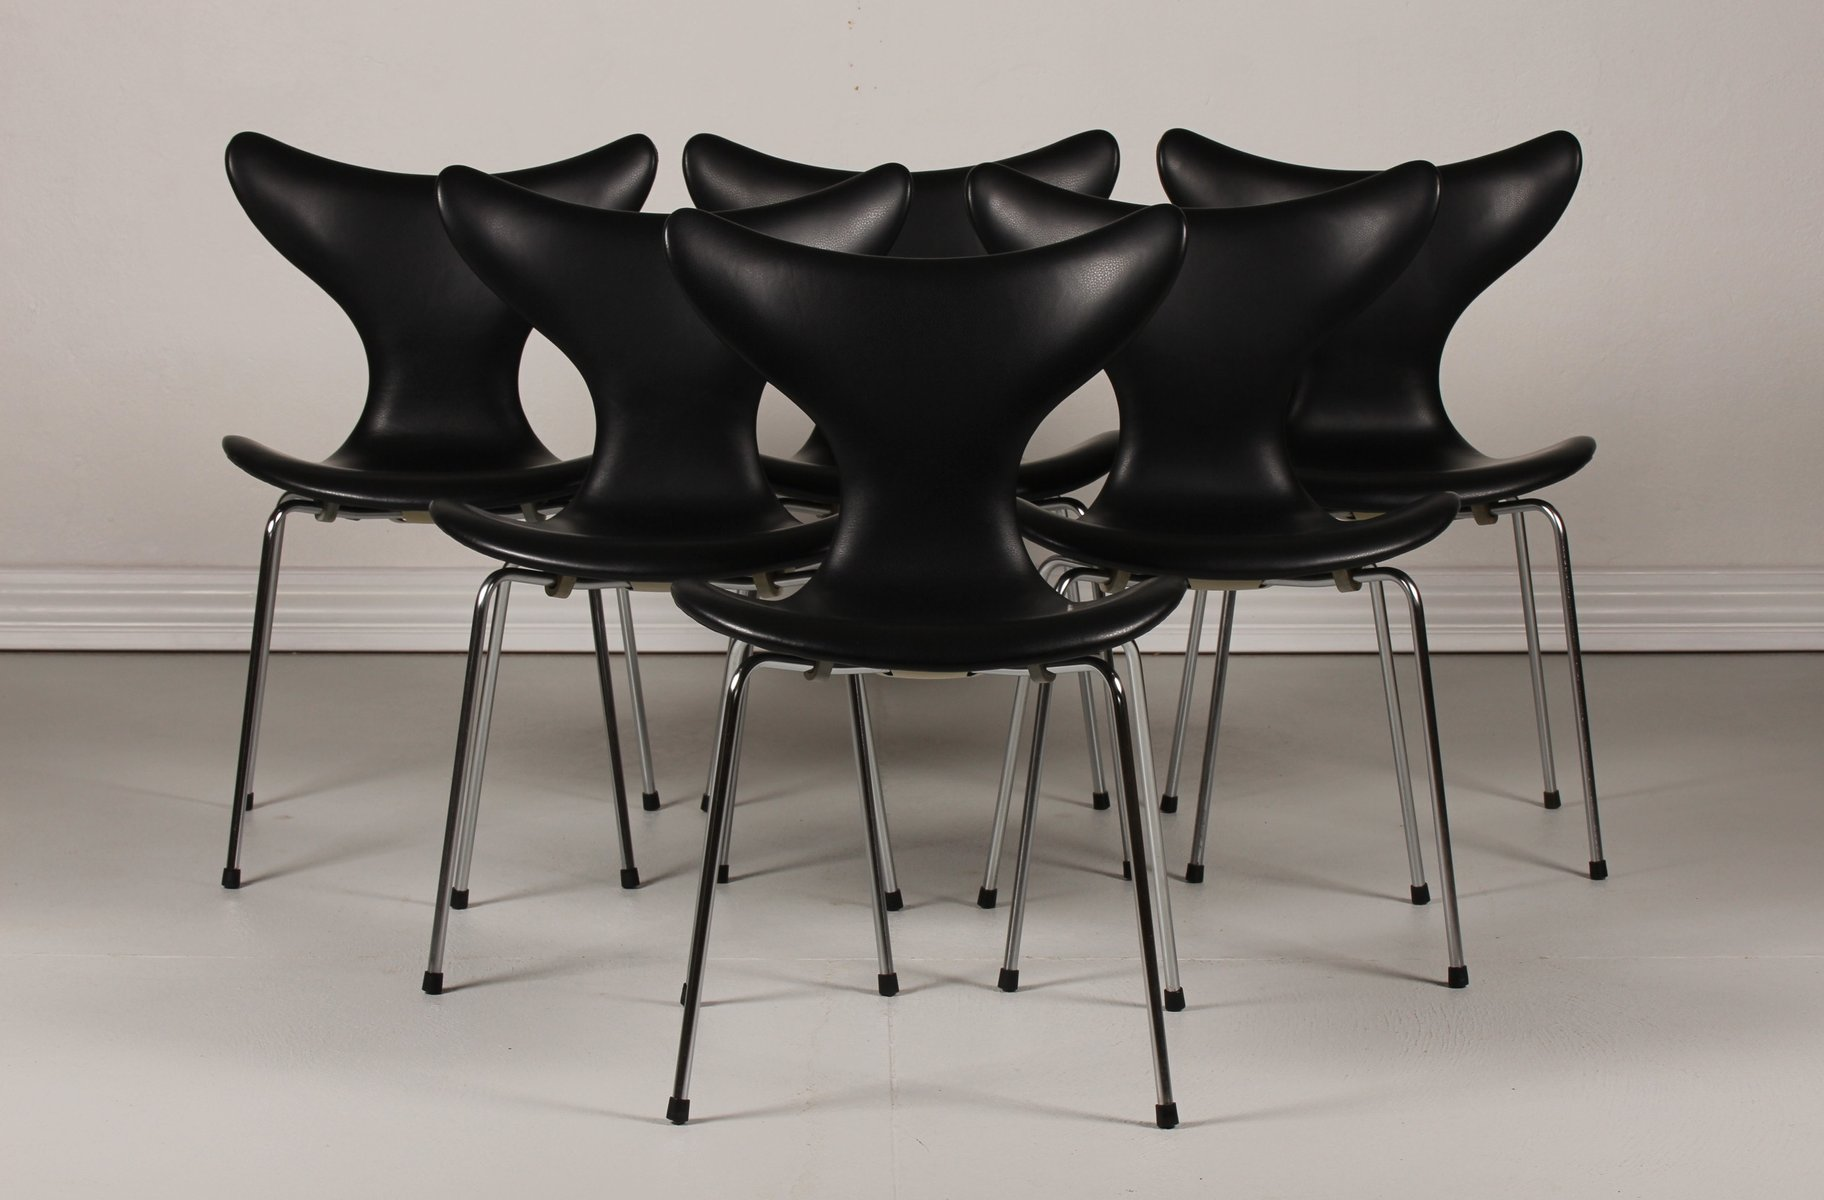 d nische lily 3108 st hle von arne jacobsen f r fritz hansen 1950er 6er set bei pamono kaufen. Black Bedroom Furniture Sets. Home Design Ideas